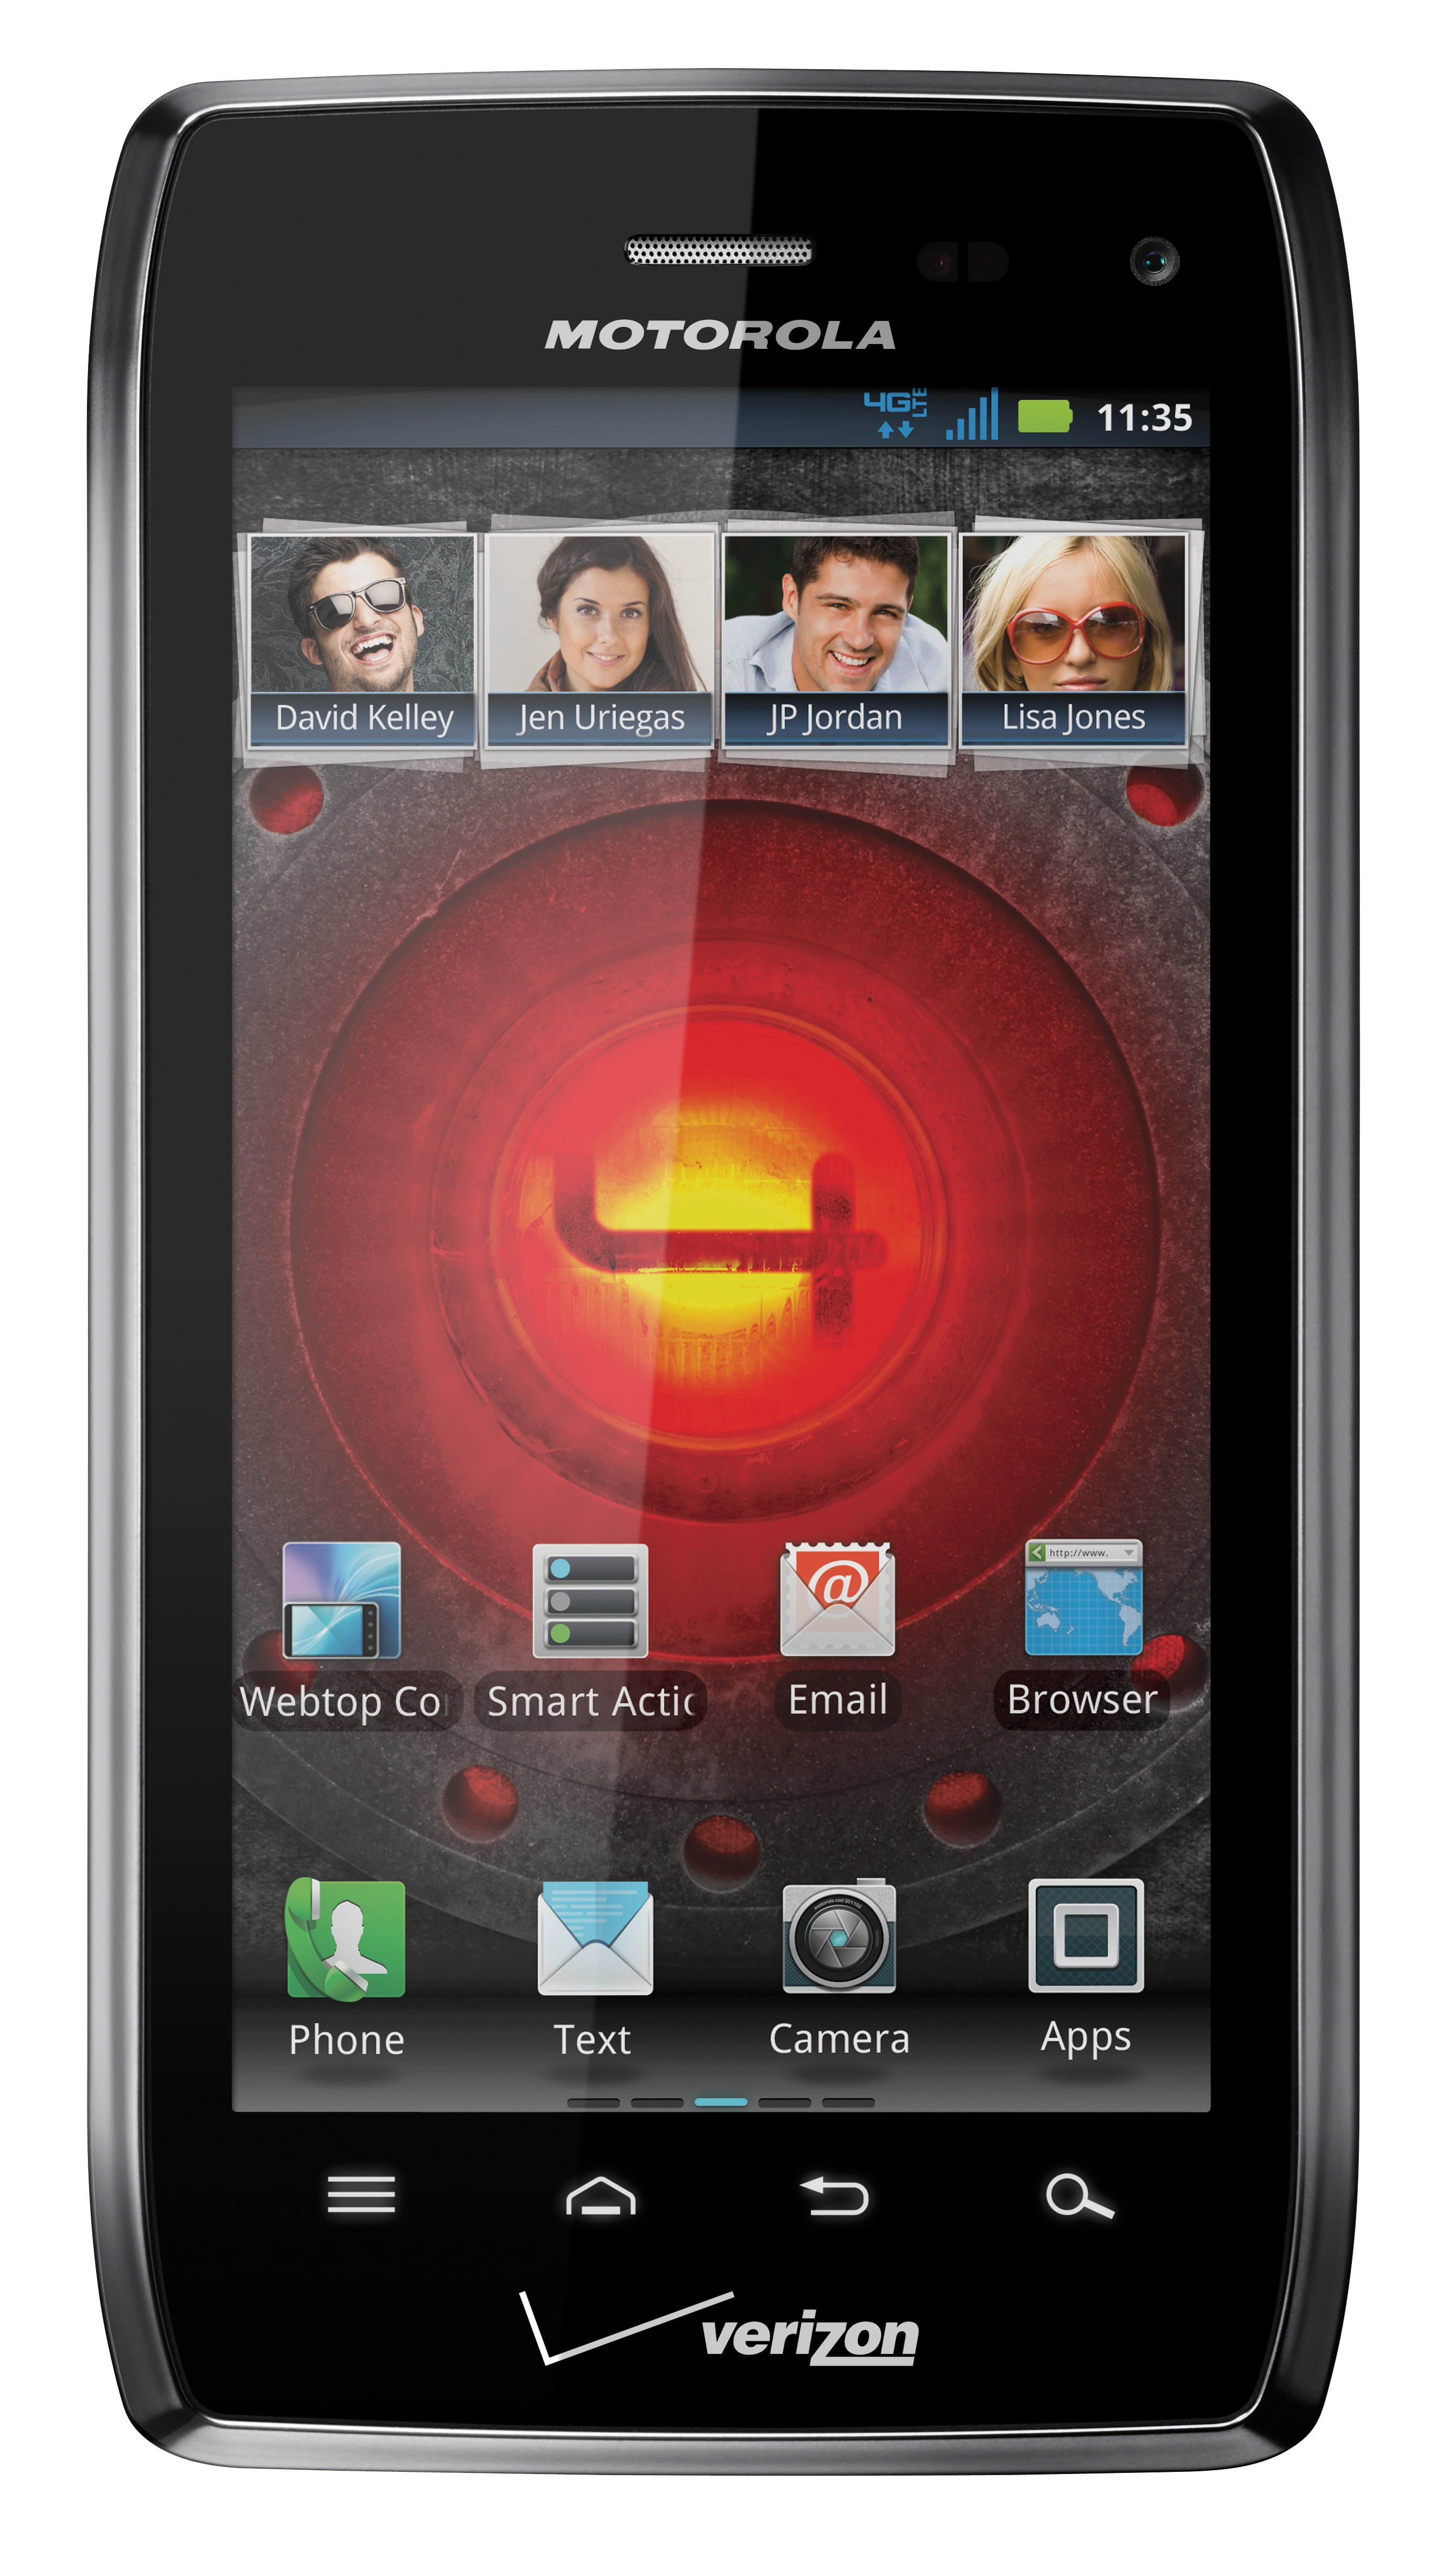 verizon wireless new android phones 2013 for that money